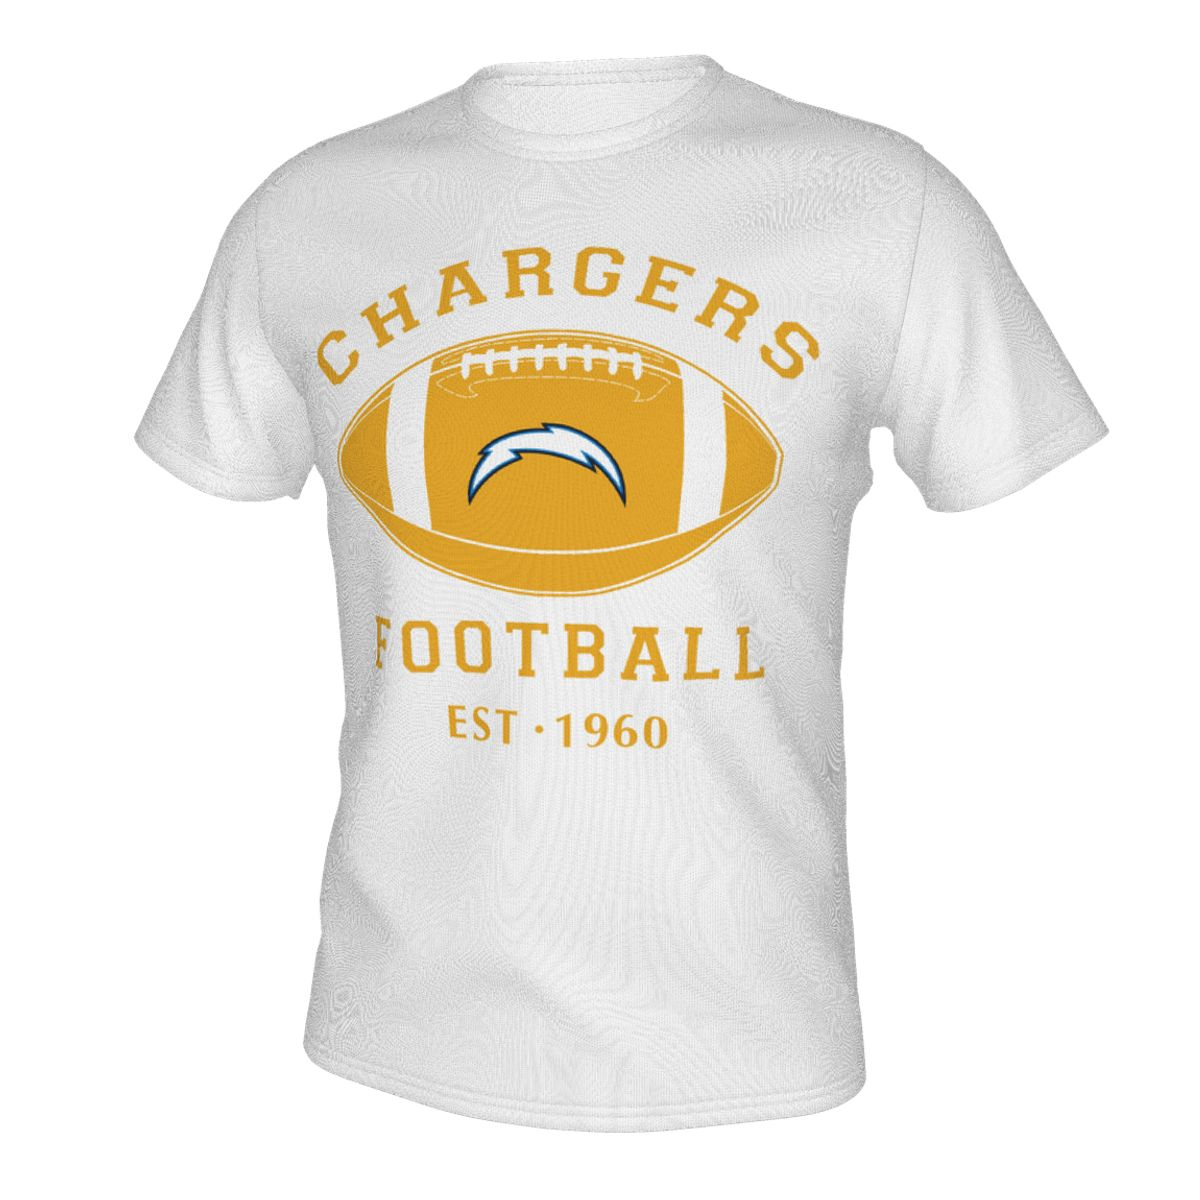 Footabll Chargers T-shirts For Men